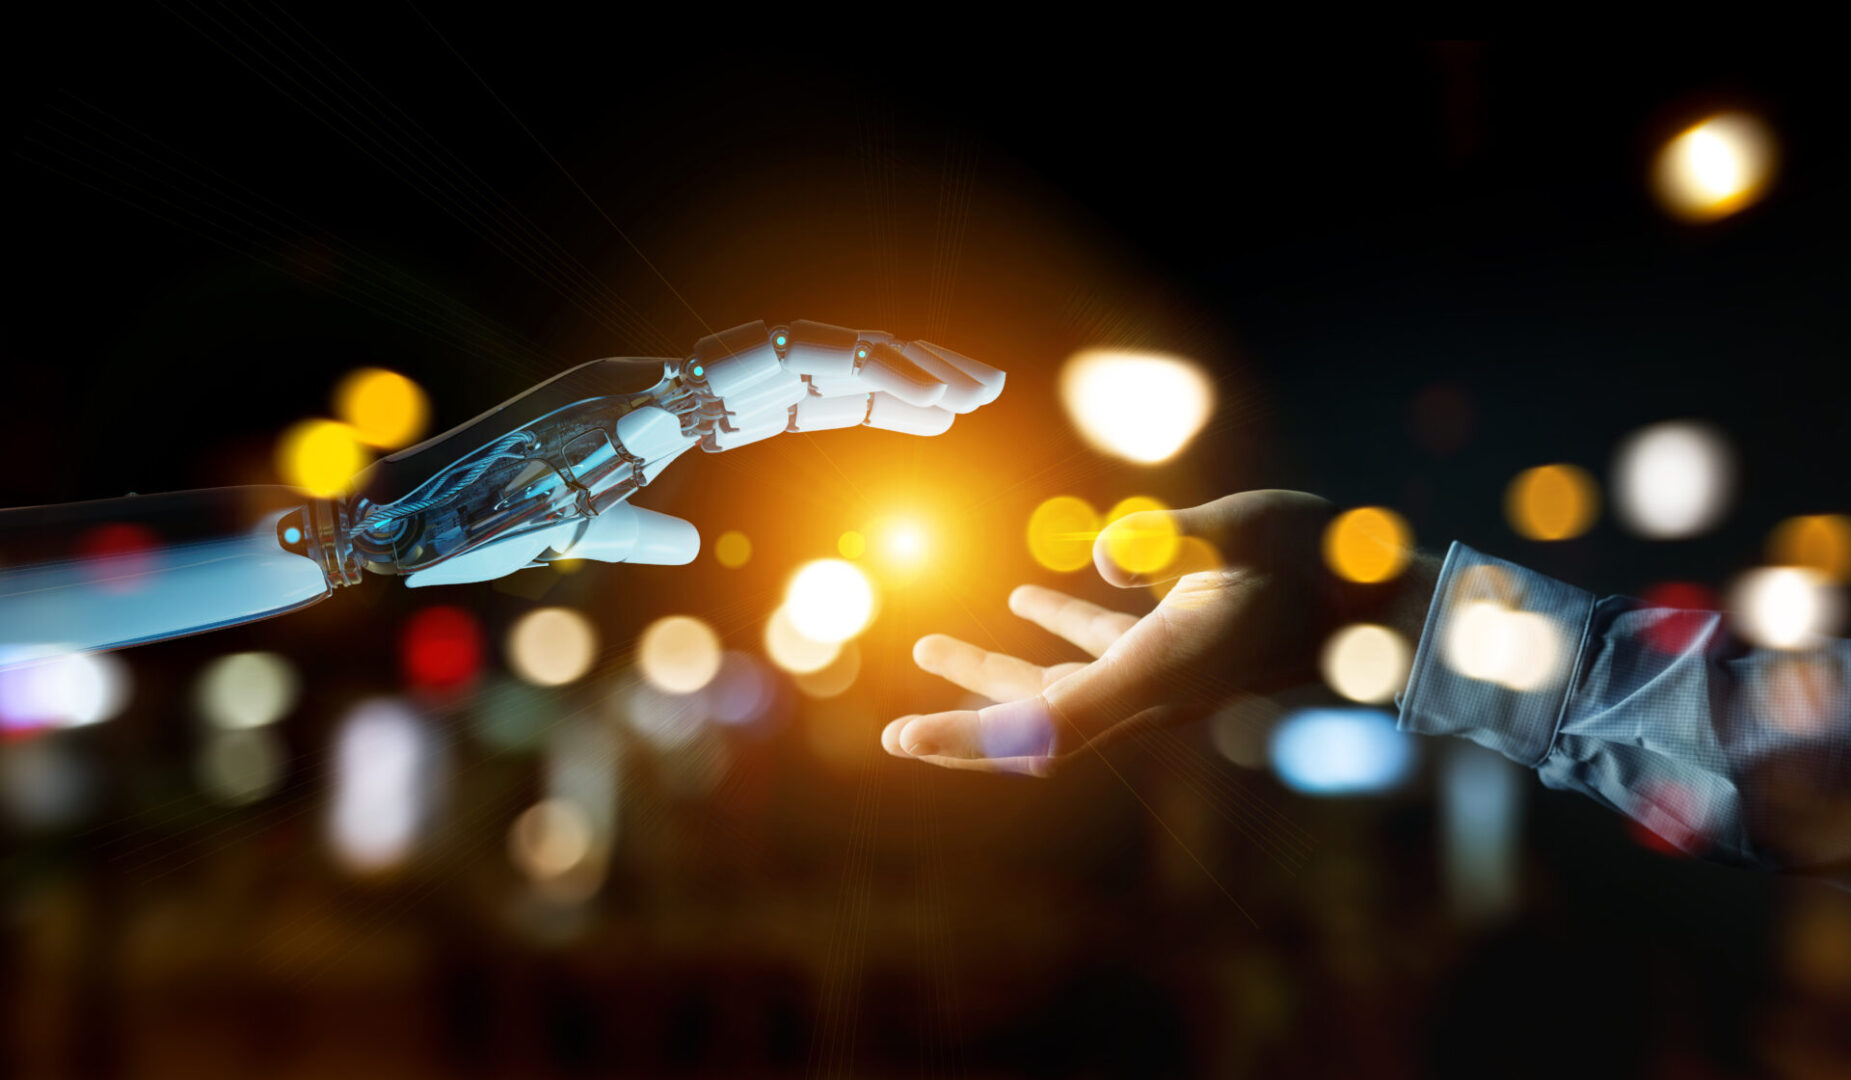 White cyborg hand about to touch human hand on dark background 3D rendering